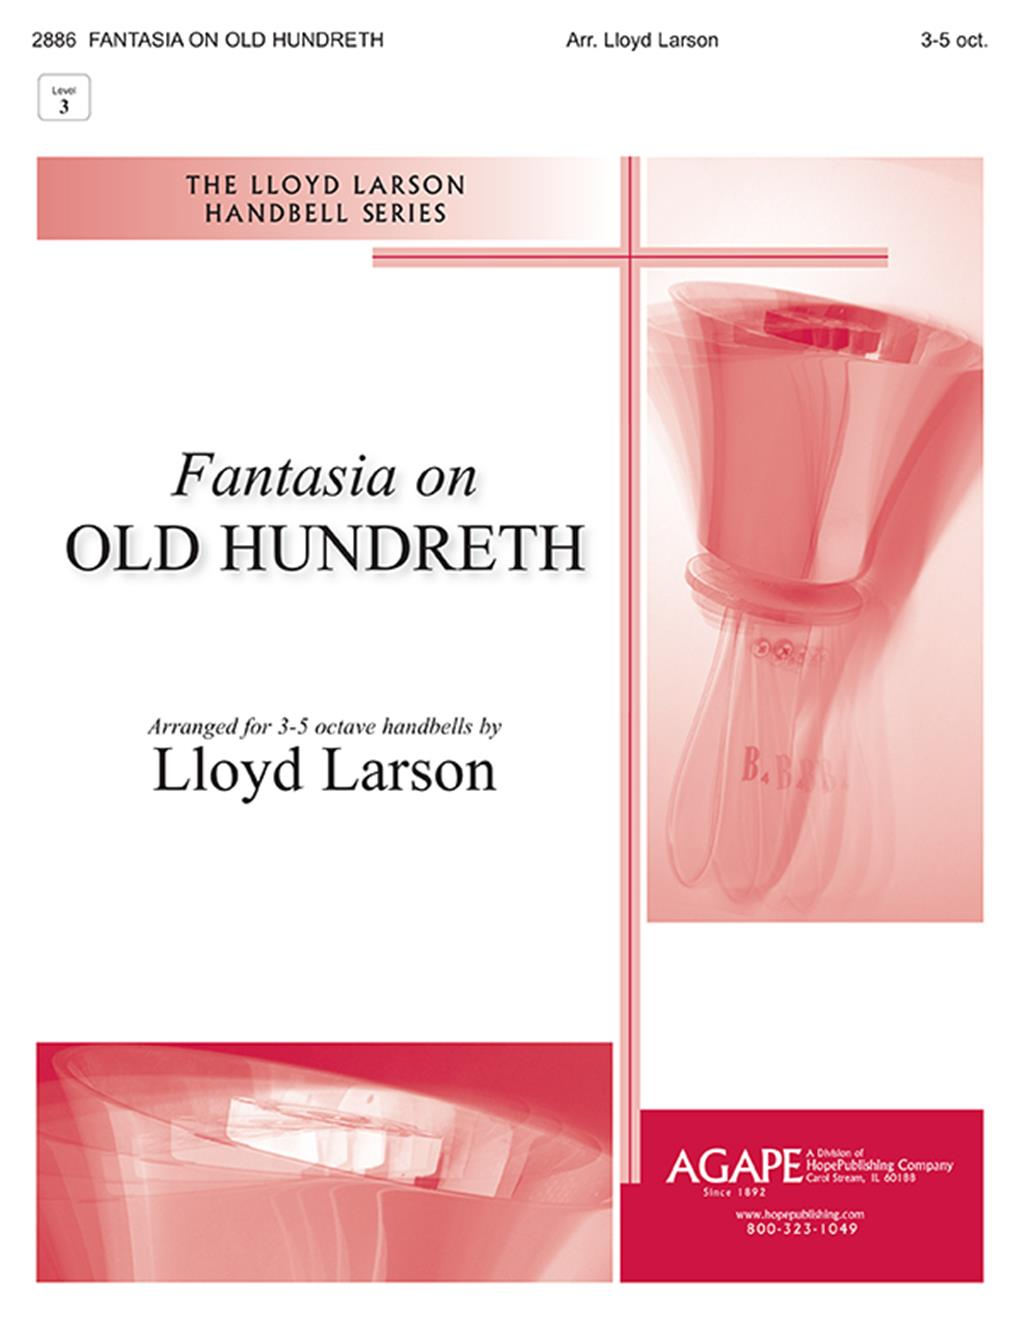 Fantasia On Old Hundreth - 3-5 Oct. Cover Image